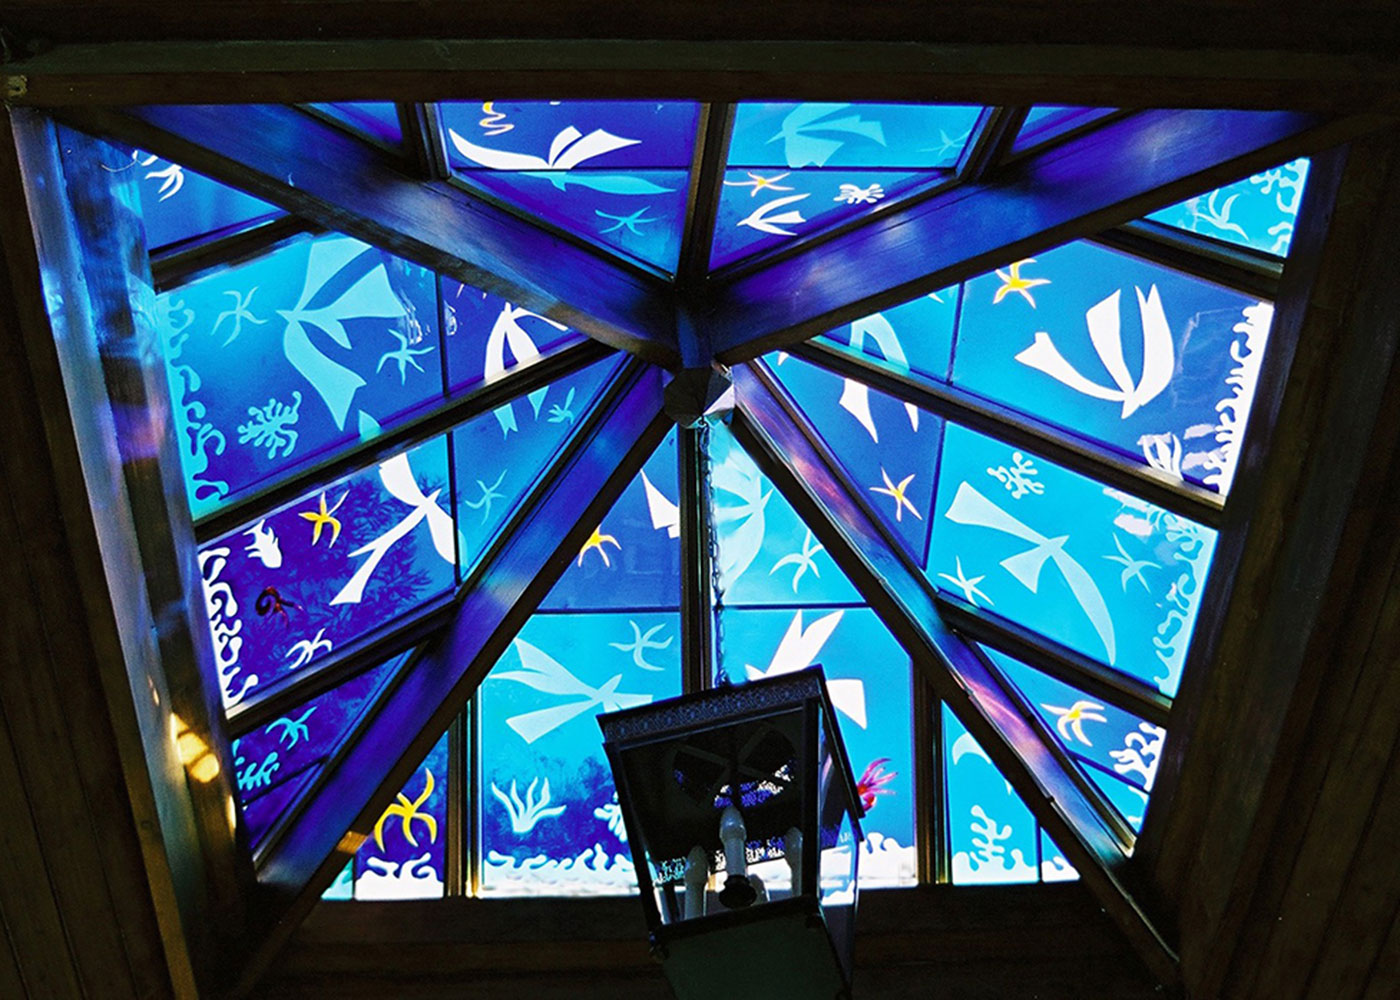 A Matisse inspired dome